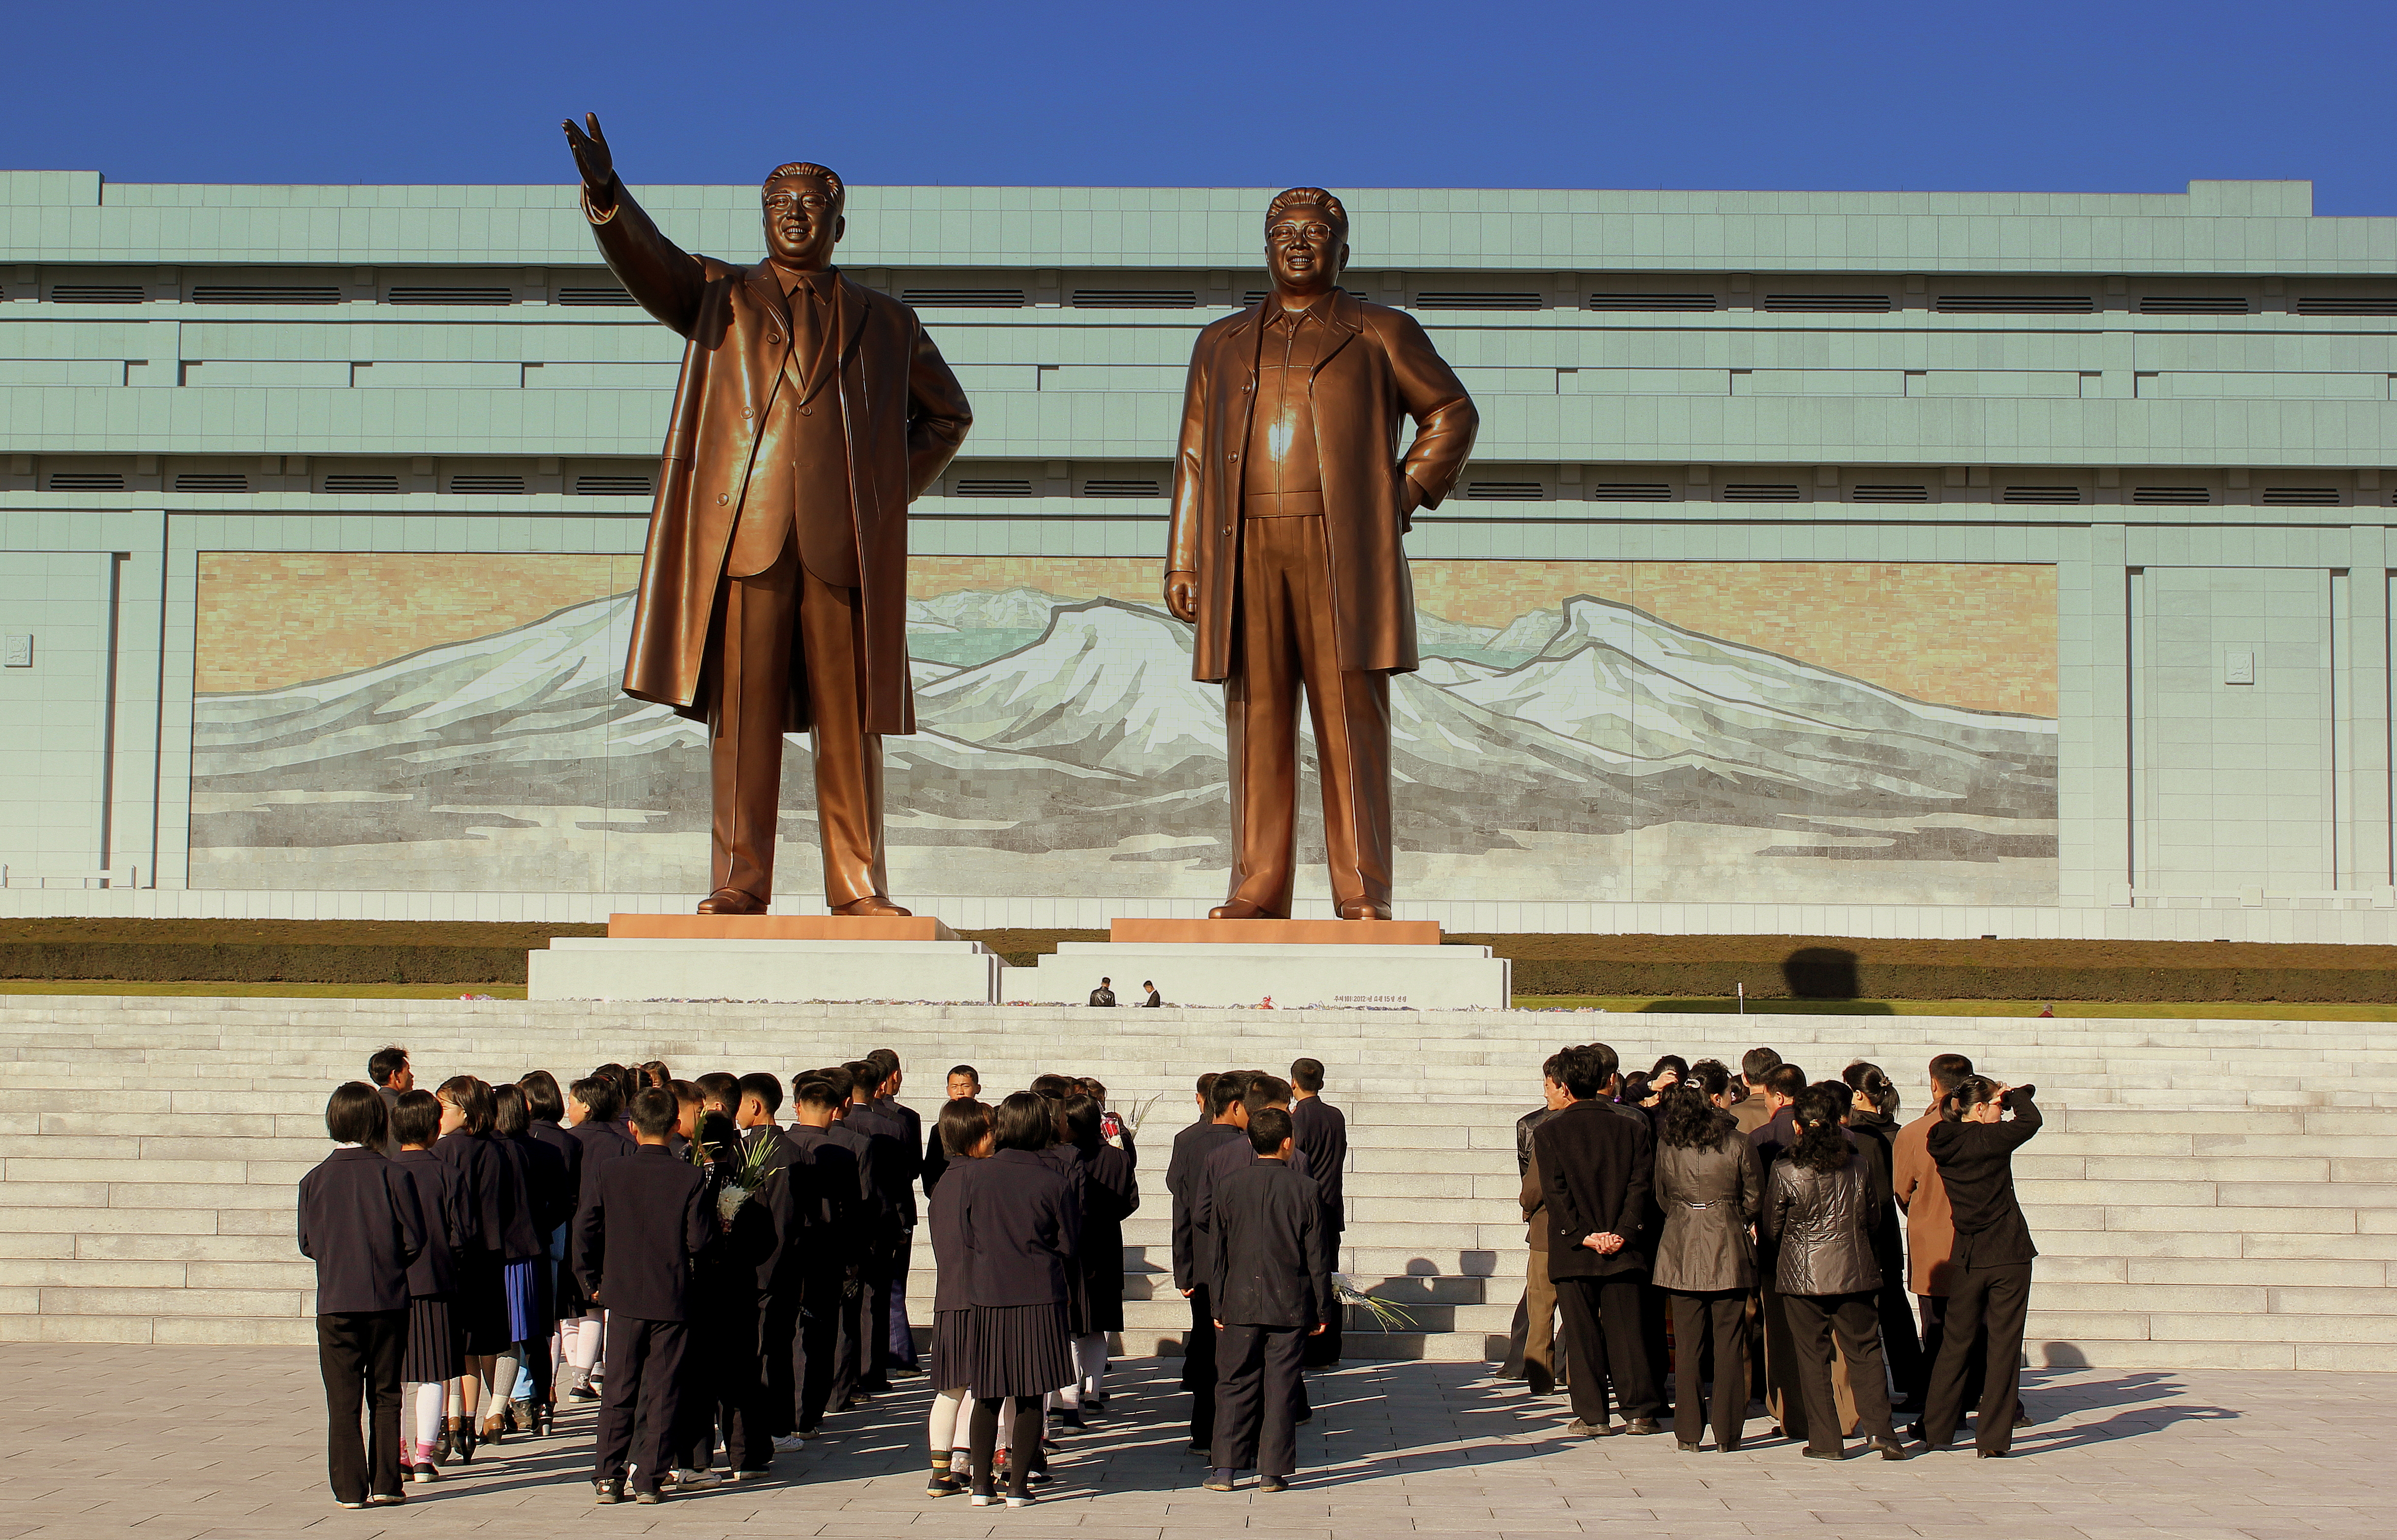 Statues of former leaders Kim Il-sung and Kim Jong-Il in Pyongyang. By flickr user calflier001.